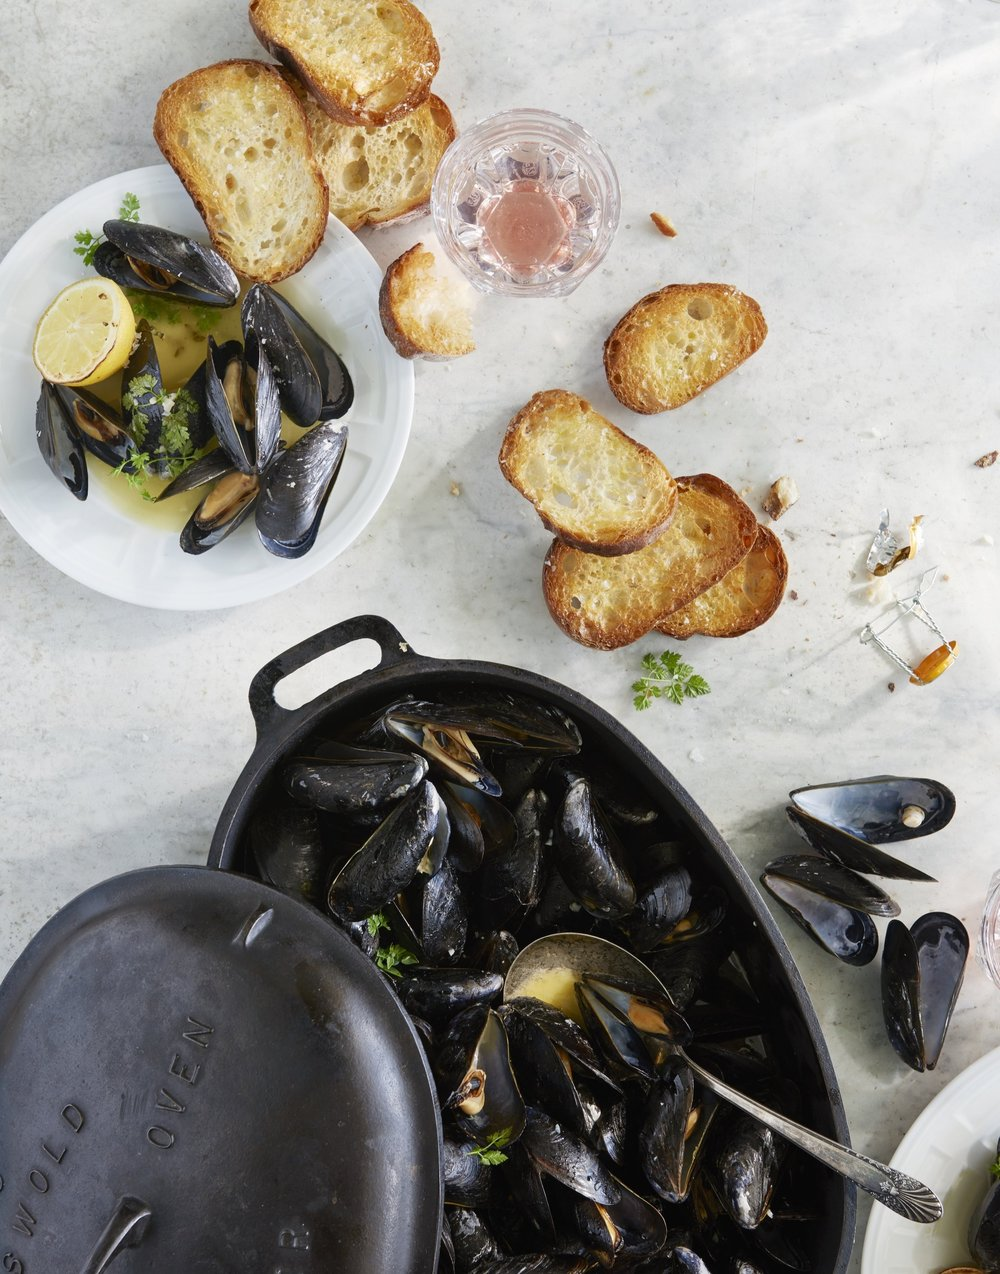 seafood_mussels_provencal-152_retouched.jpg